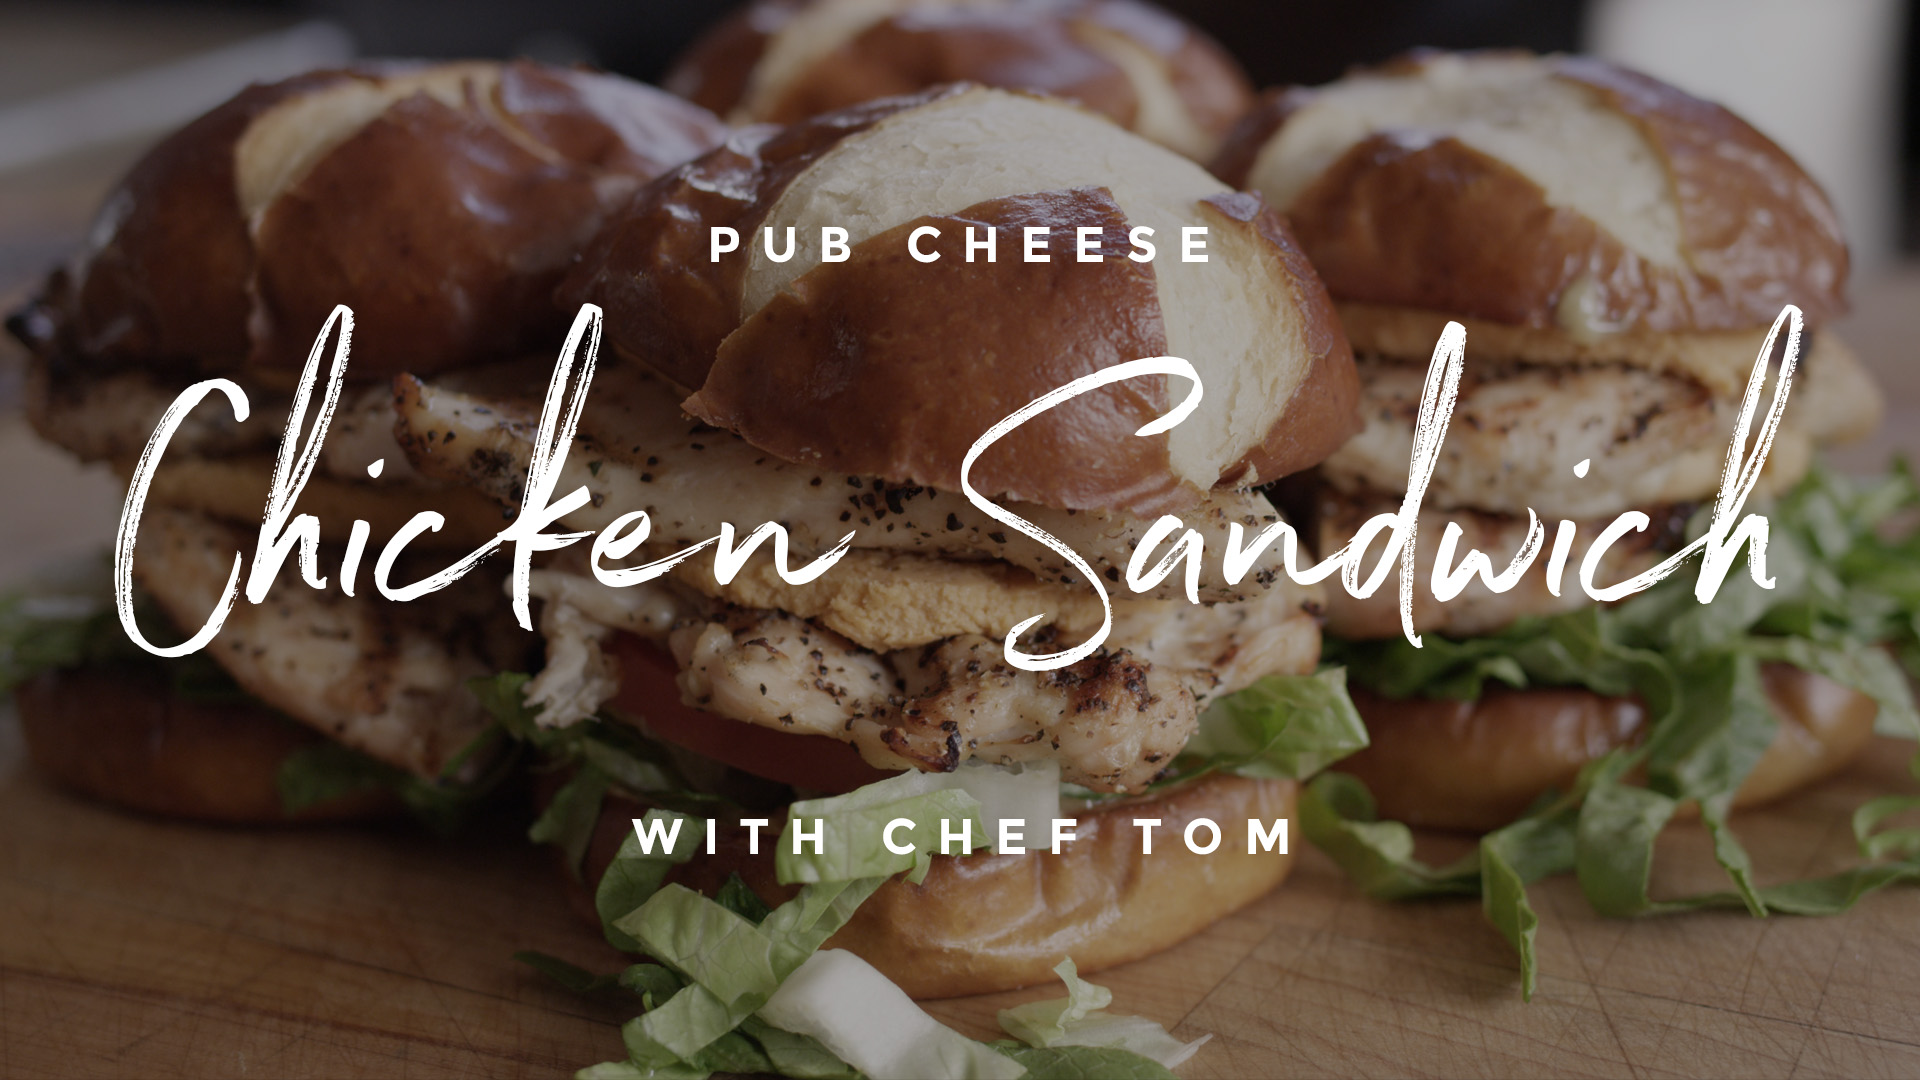 Pub Cheese Chicken Sandwich Recipe